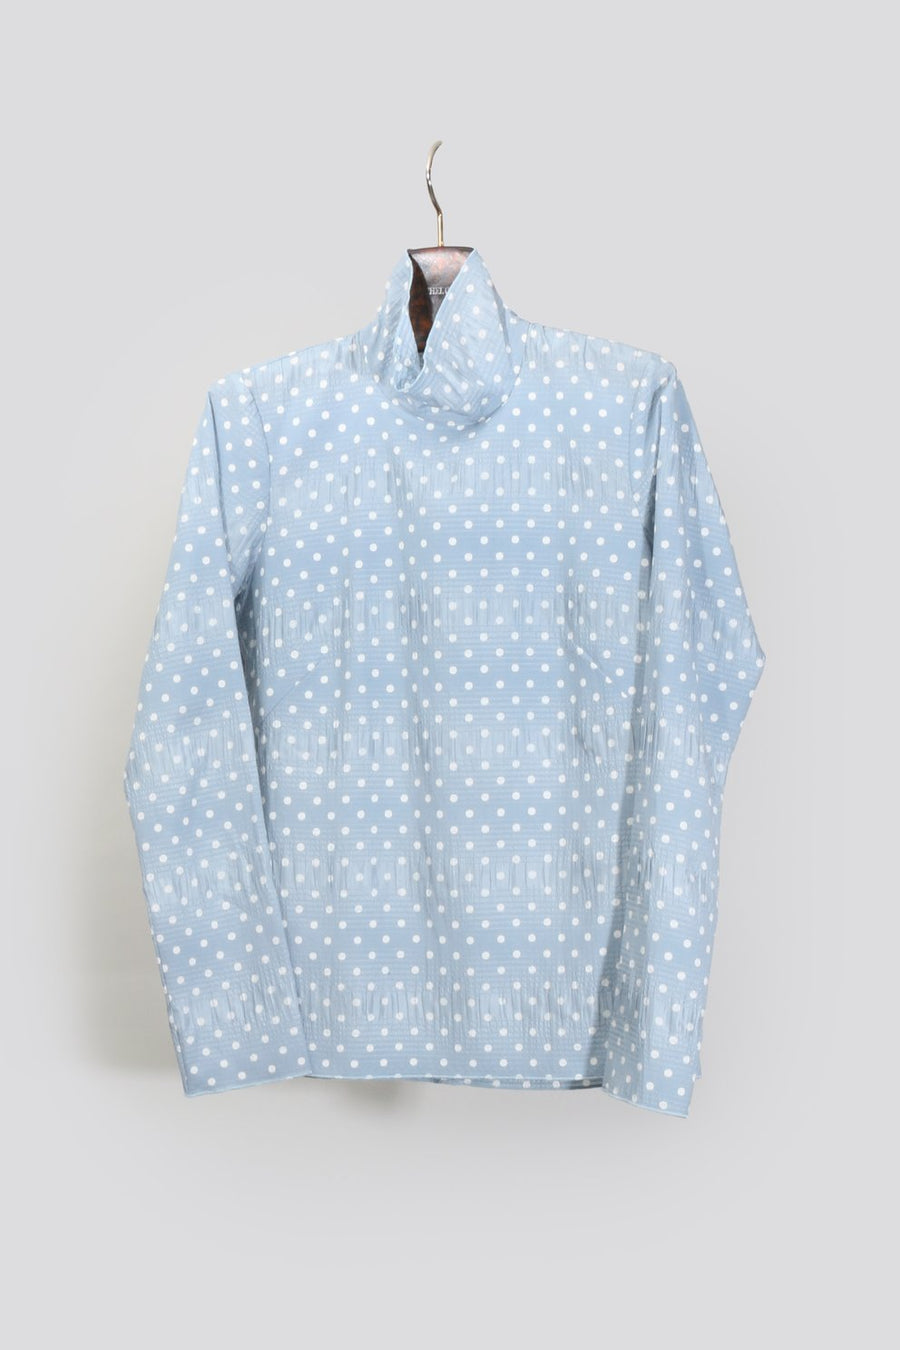 Varda Polka Dot Top, Blue x White